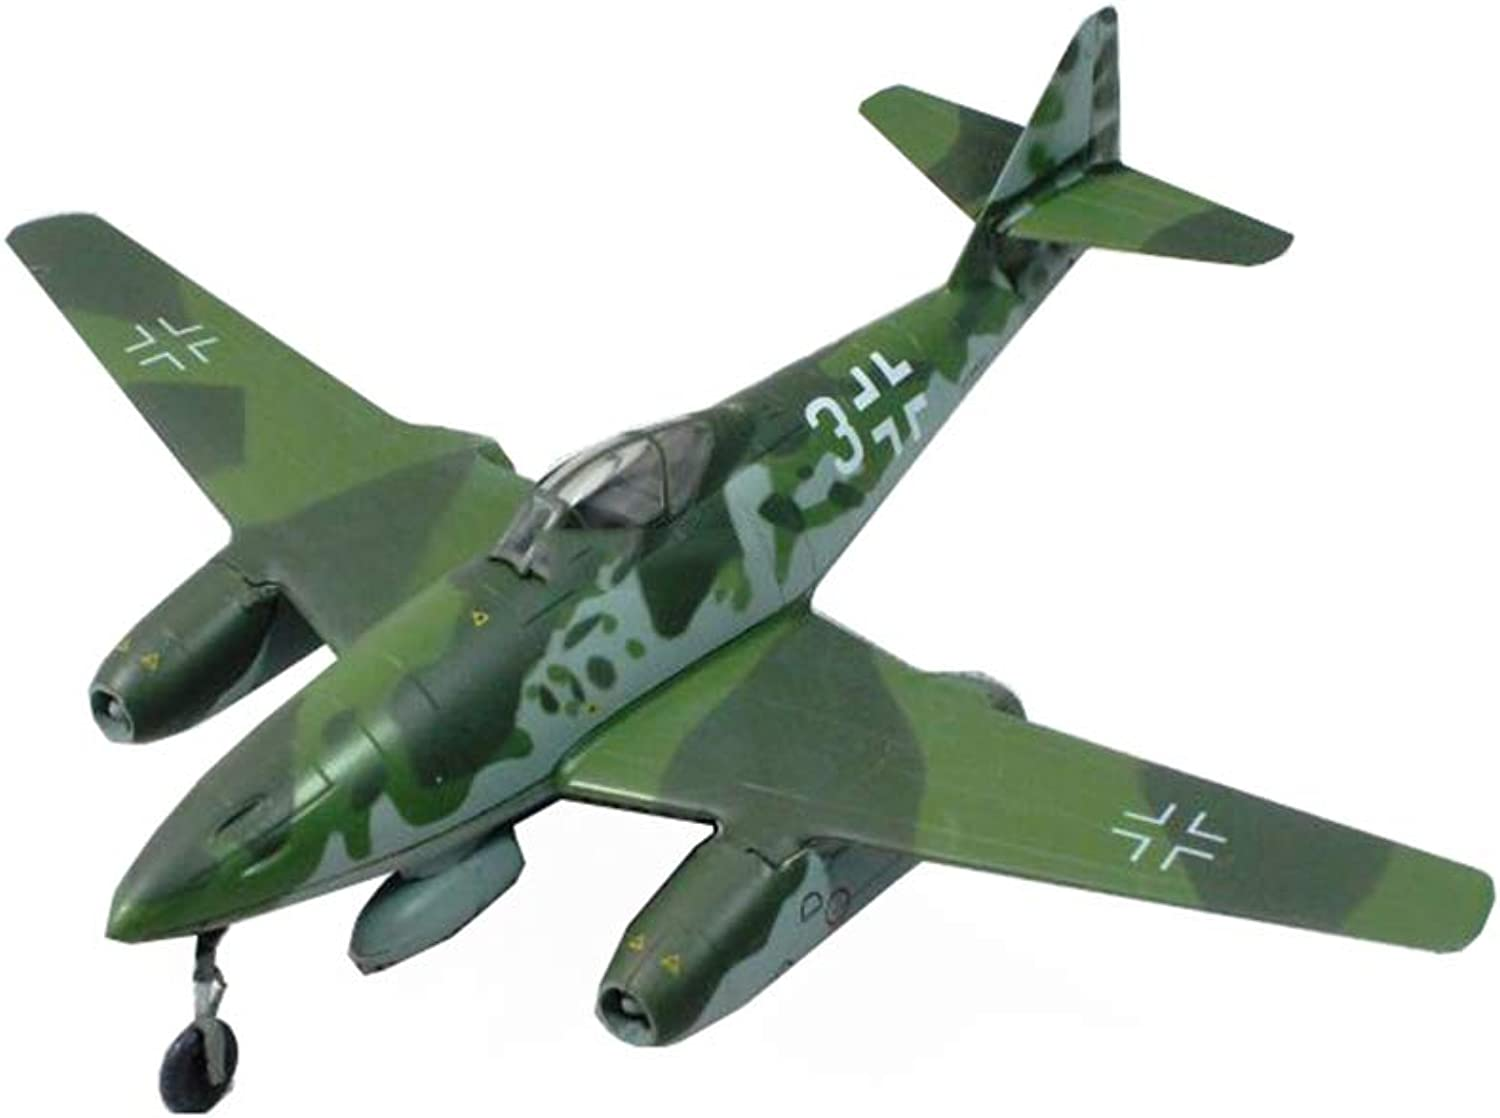 Aircraft Model, World War Ii Weapon  German Me262  Jet Fighter Finished Product Simulation Model, Retro Military Decoration NonSouvenir Souvenir